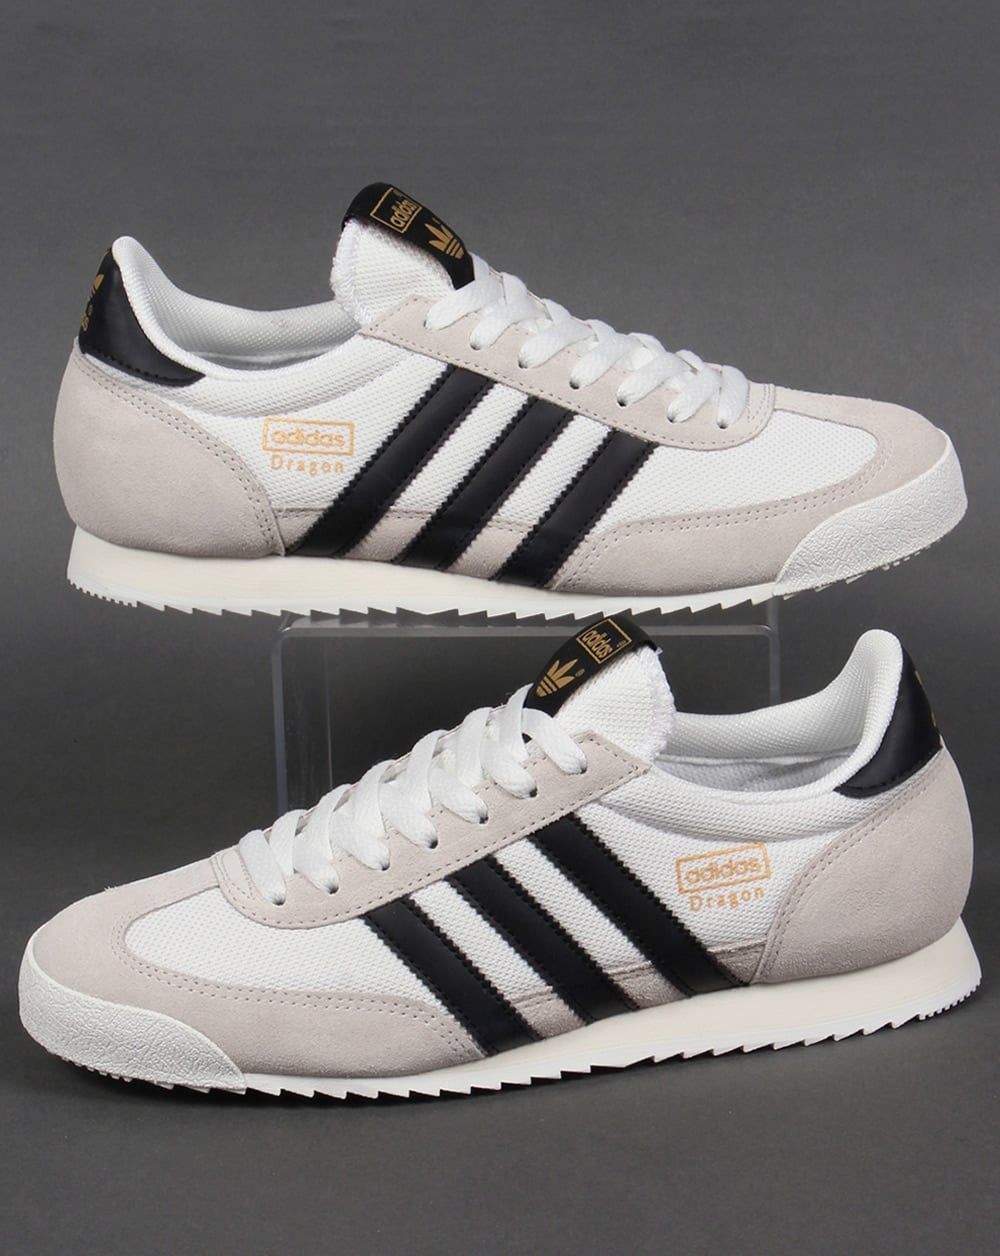 more photos f79ba 75bc0 adidas Trainers Adidas Dragon Trainers White Black